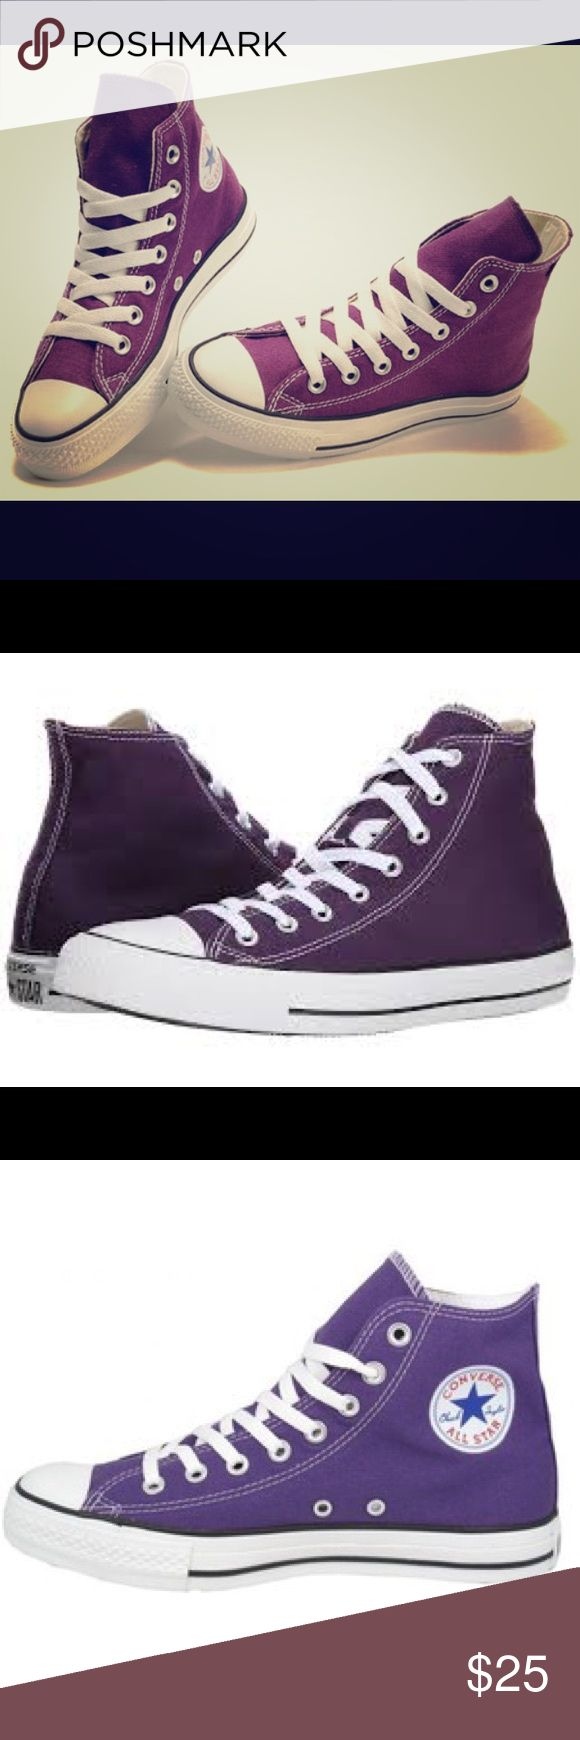 NWOB Purple Converse High Top Sneakers Unisex Classic Chucks! NWOB Purple Converse High Tops Size 8 Women's or 6 Men's. Sporty and fun! Converse Shoes Sneakers